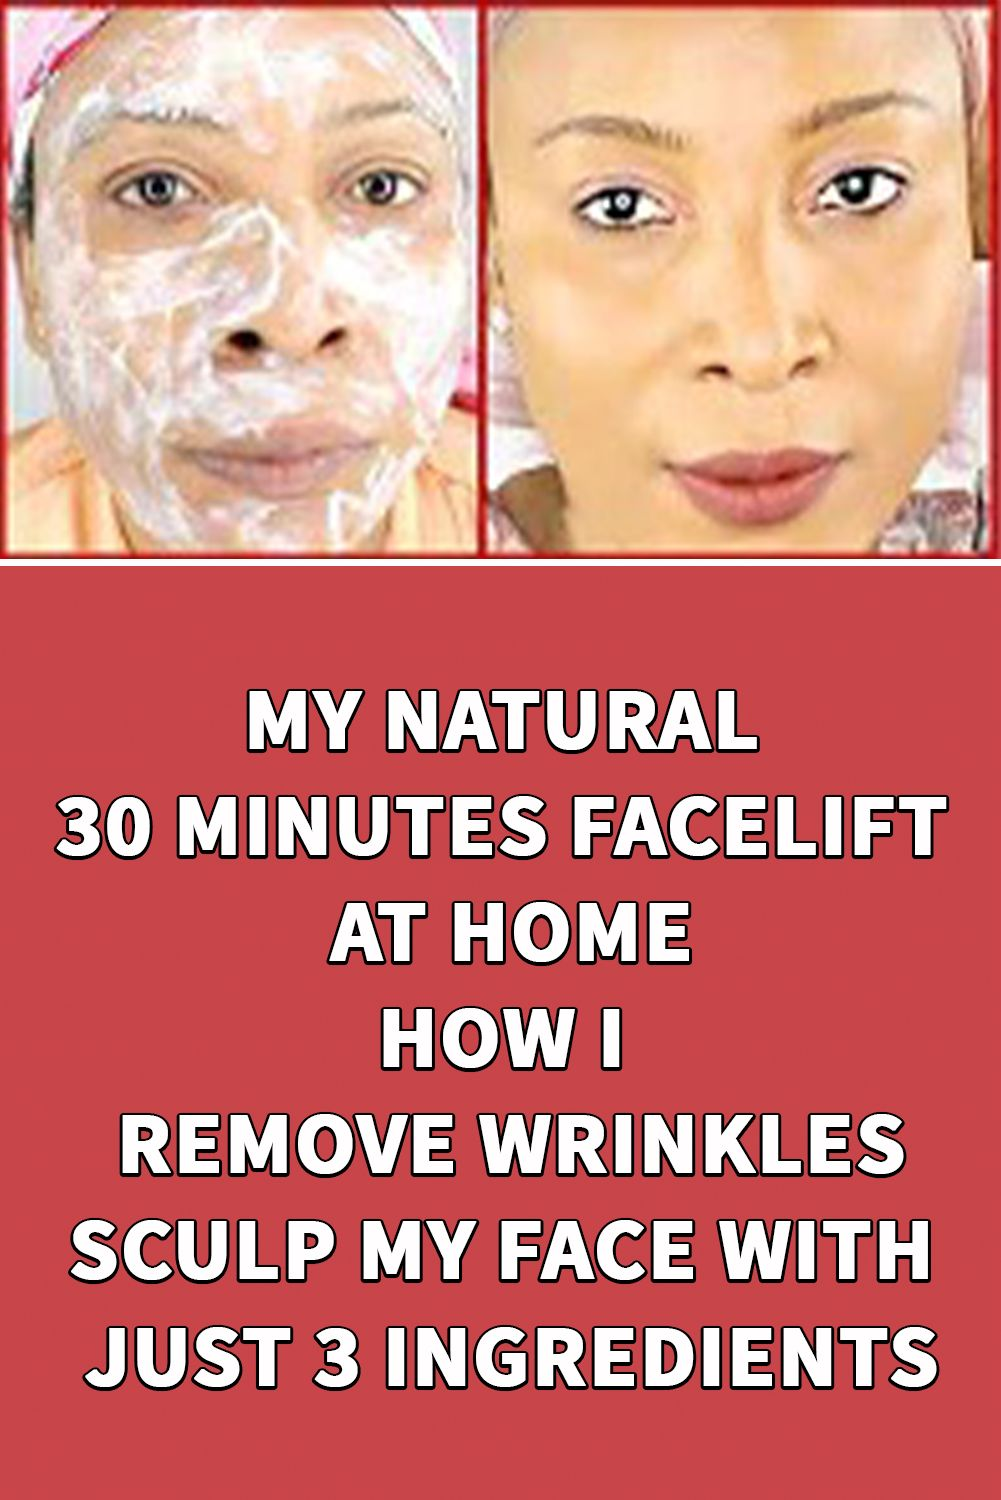 My Natural 30 Minutes Facelift At Home How I Remove Wrinkles Sculp My Face With Just 3 Ingredients In 2020 Wrinkle Remover Wrinkles Beauty Skin Care